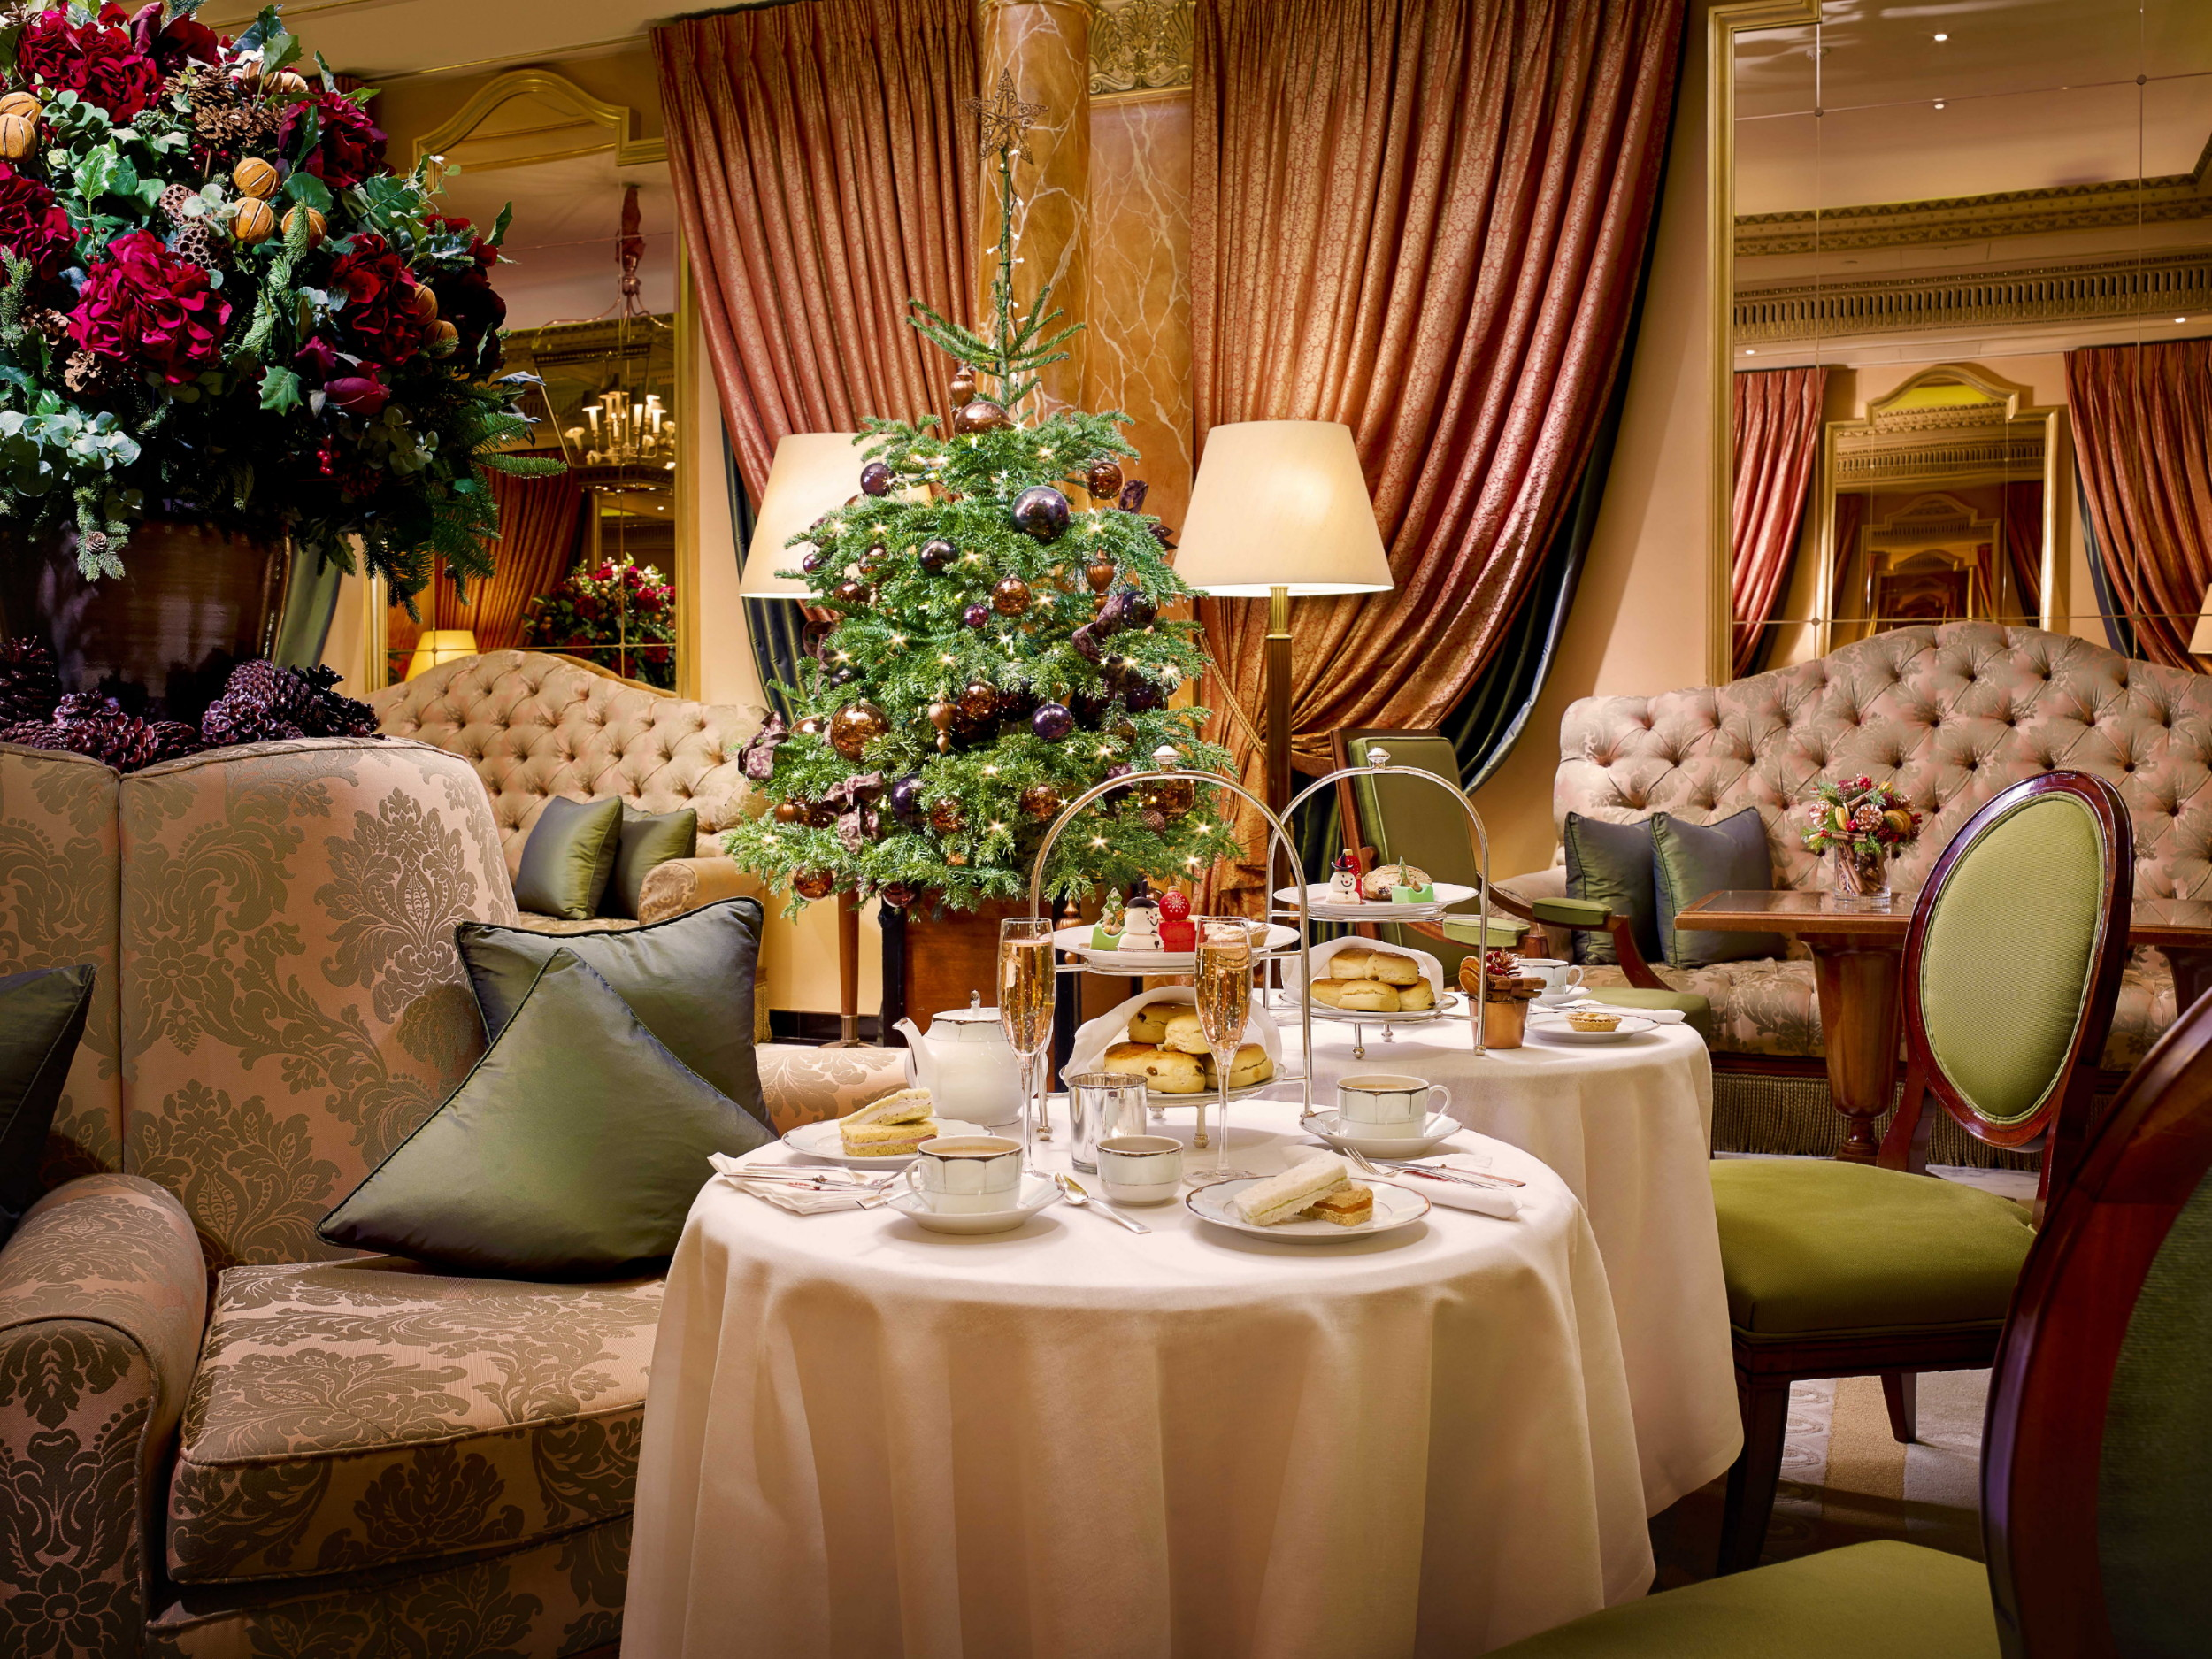 Festive Season Special Offerings At The Dorchester